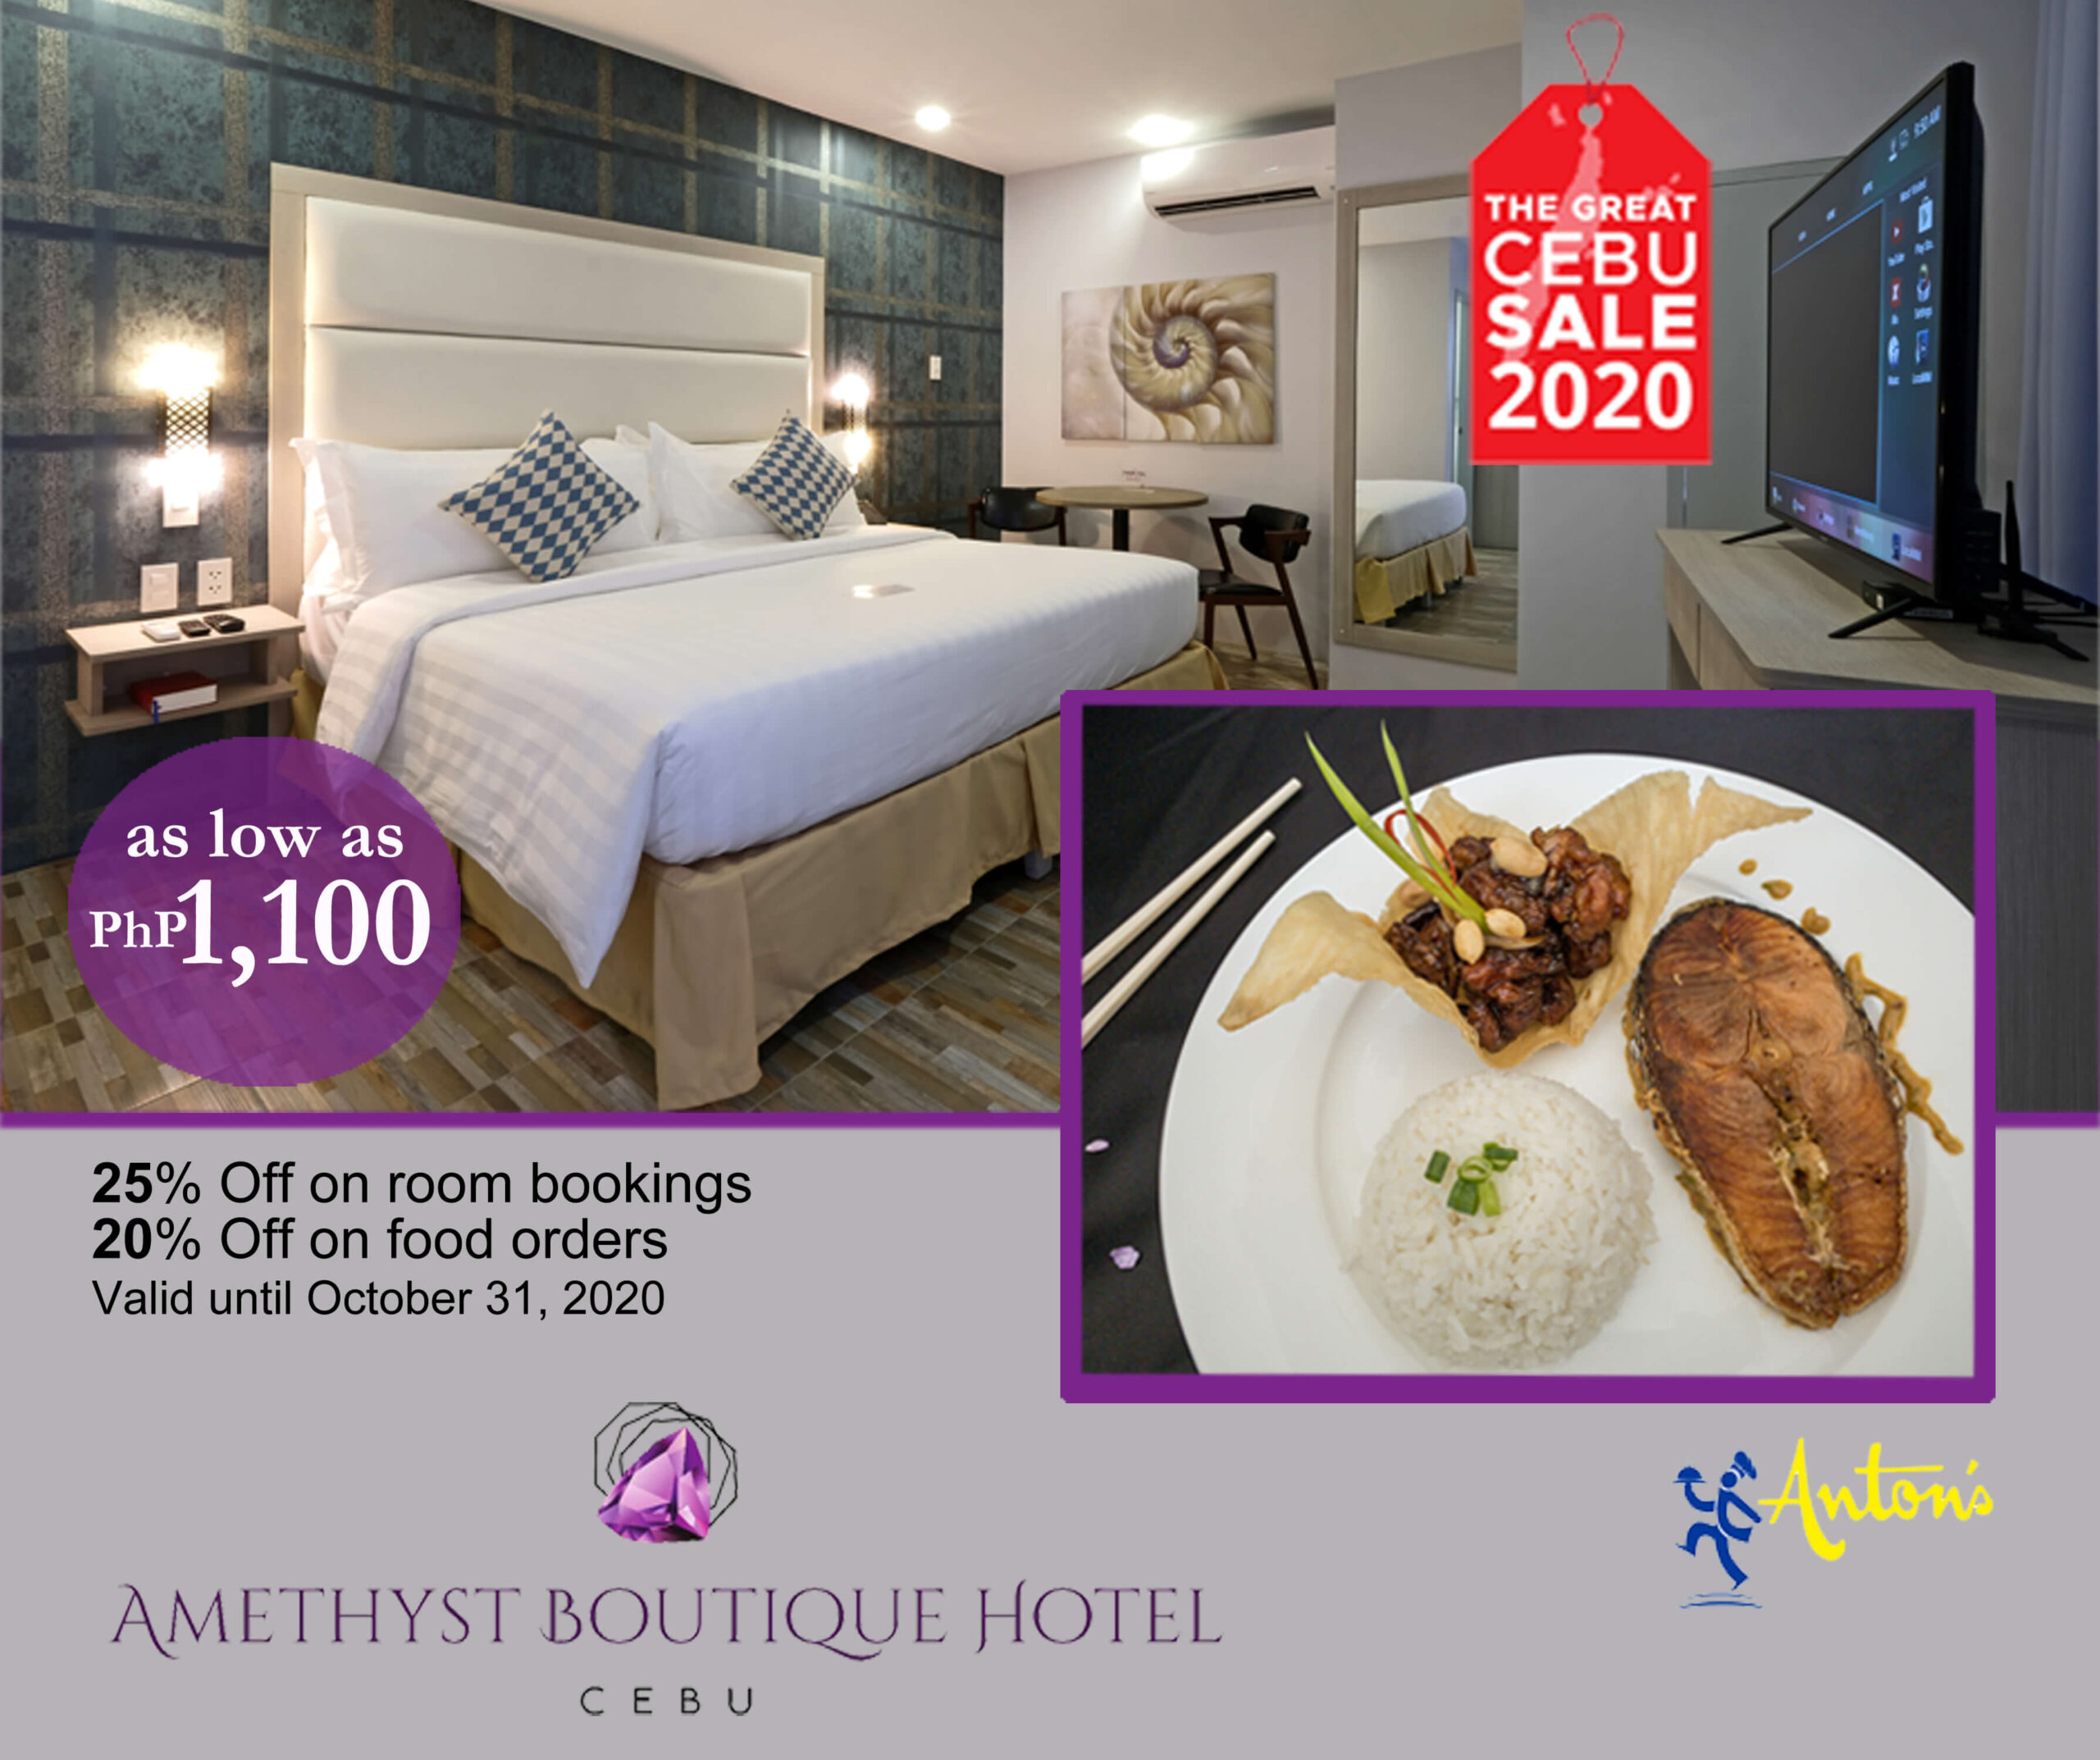 Amethyst Boutique Hotel: As low as P1,100